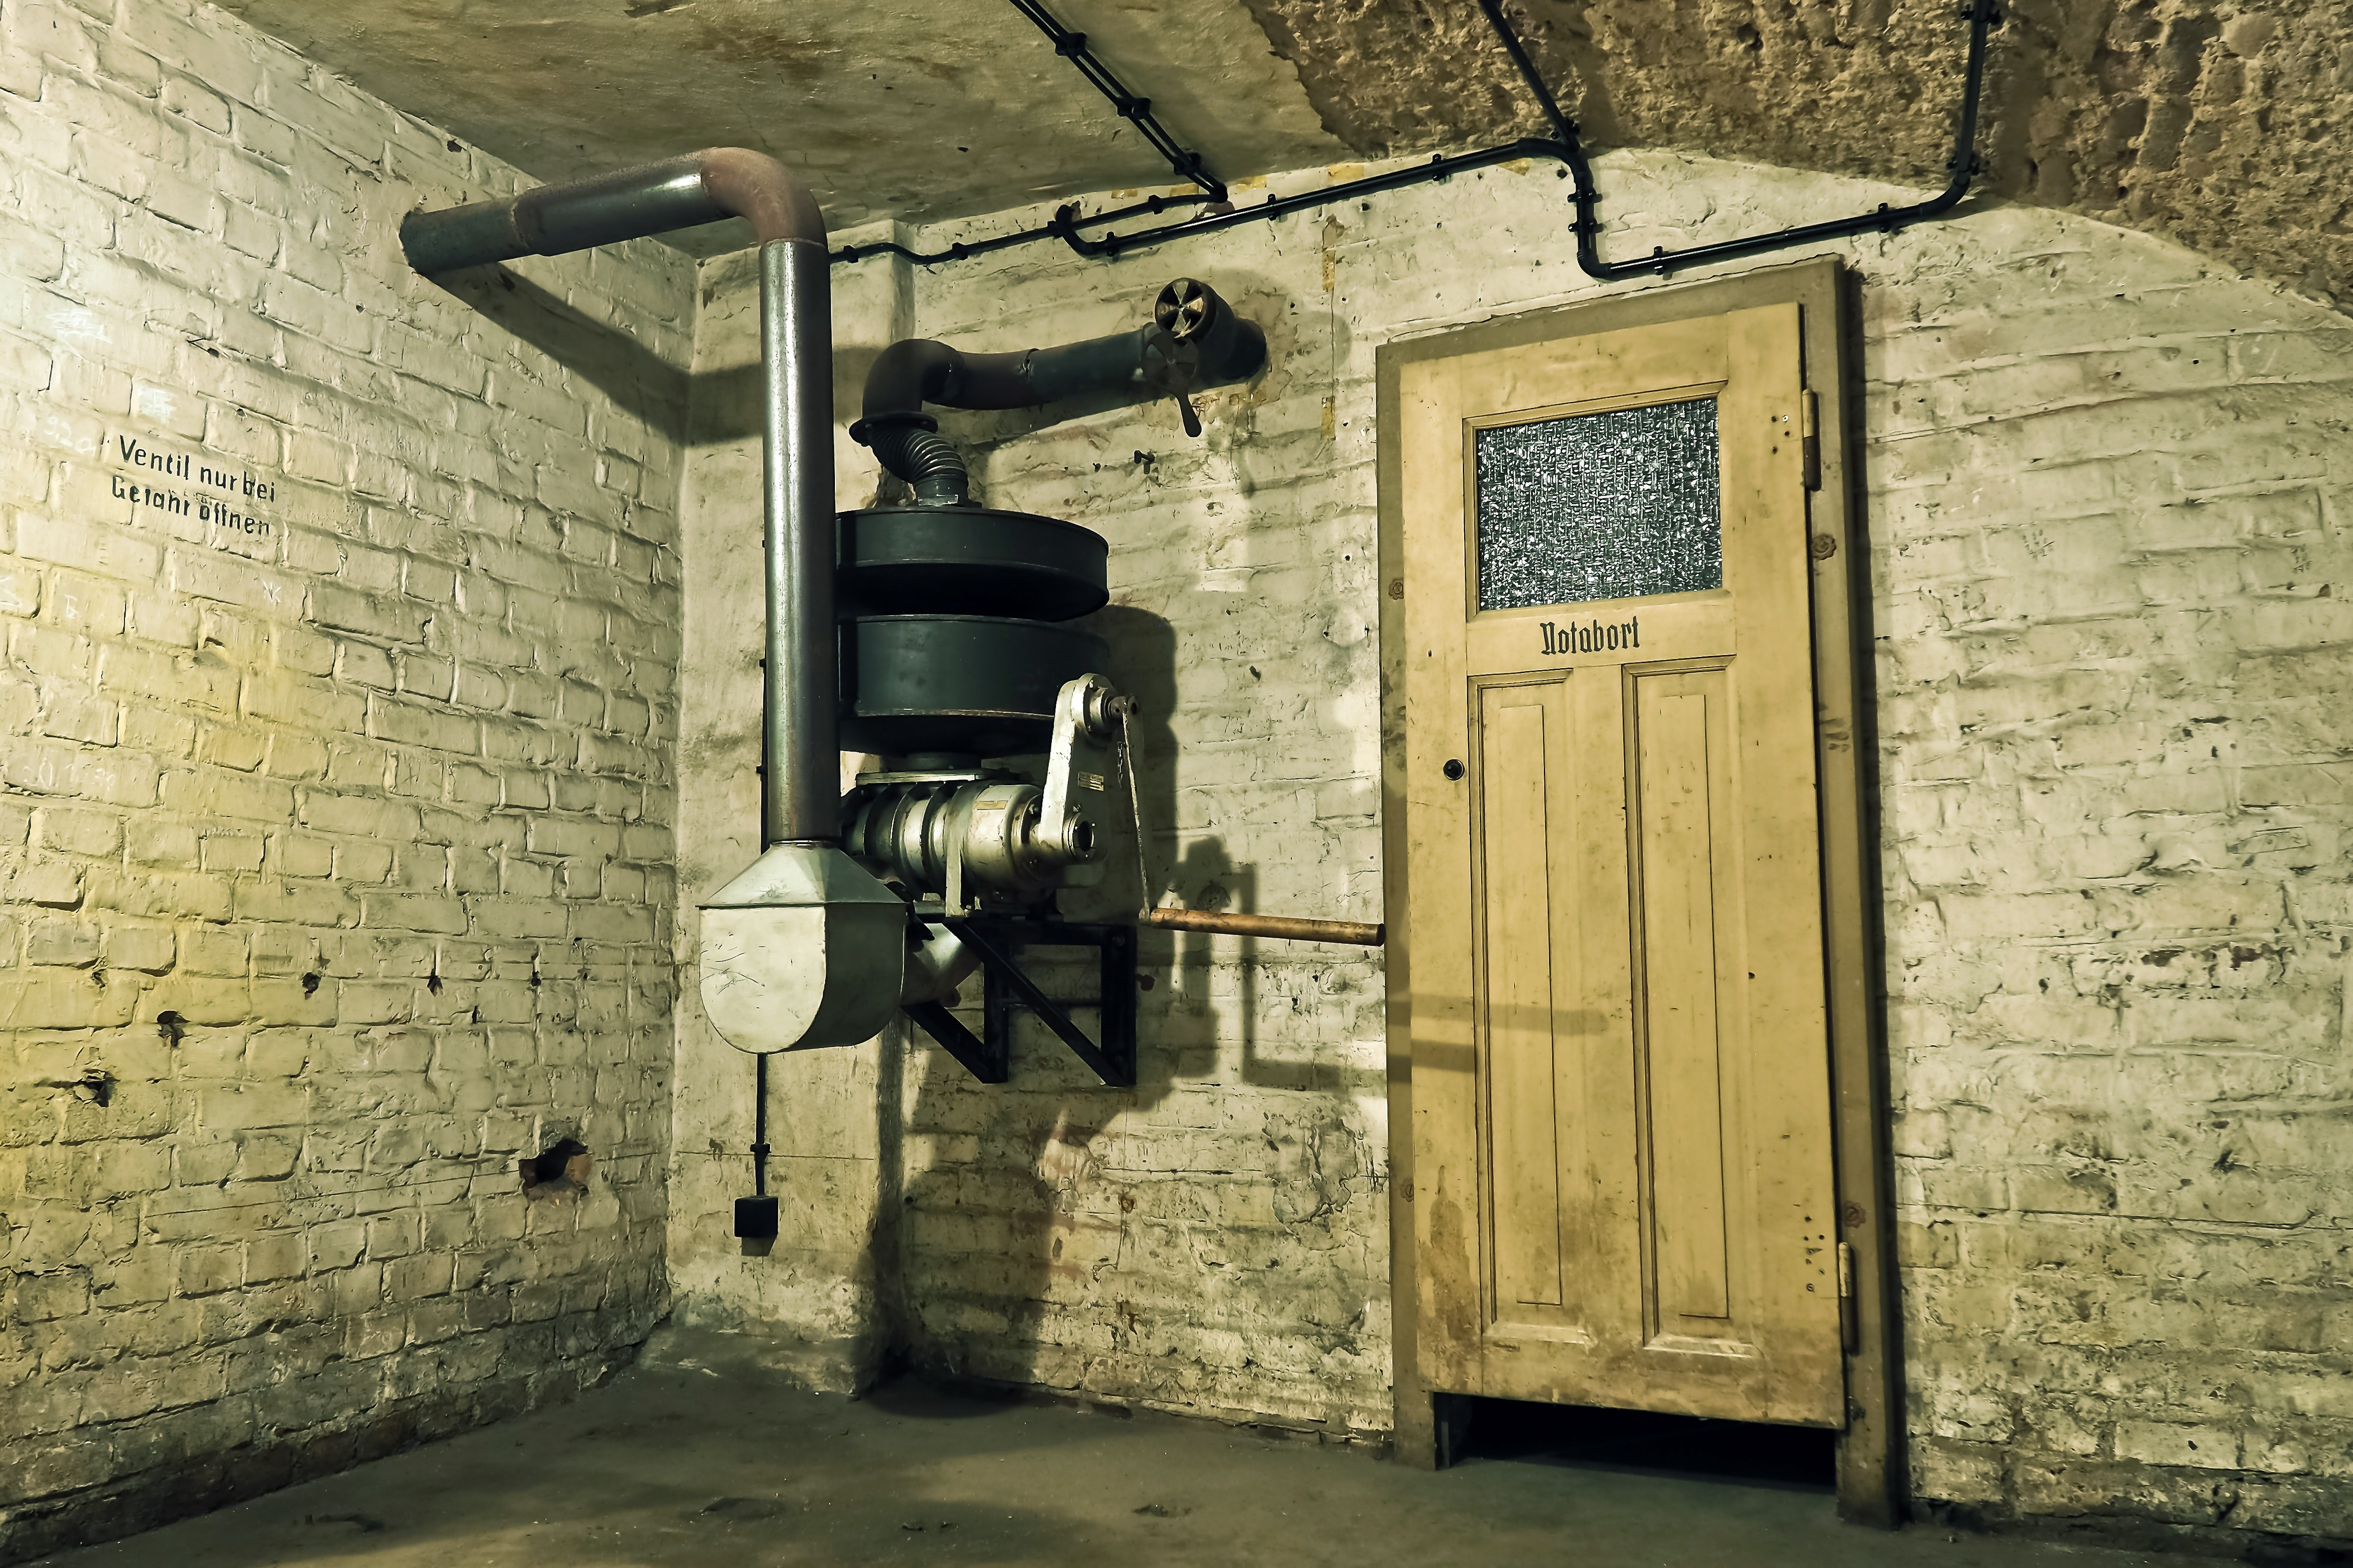 Black and Gray Metal Machine Inside a Room, Abandoned, Indoors, Vintage, Underground, HQ Photo